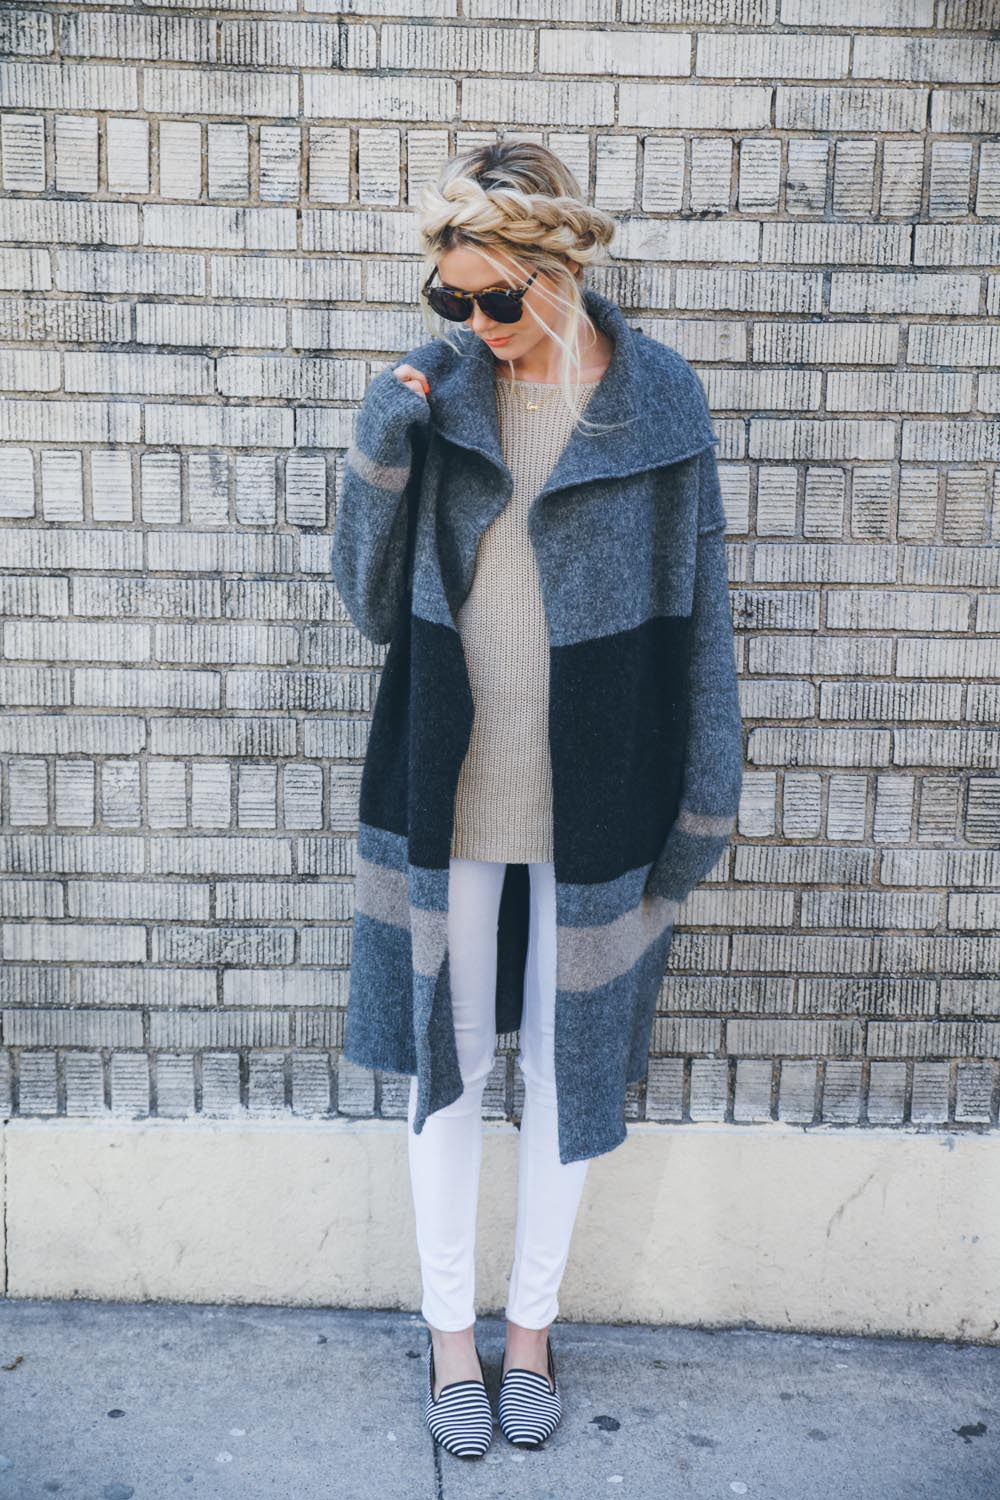 Amber Fillerup Clark is wearing striped shoes from Sole Society, jeans from Rag & Bone and a sweater from James Perse